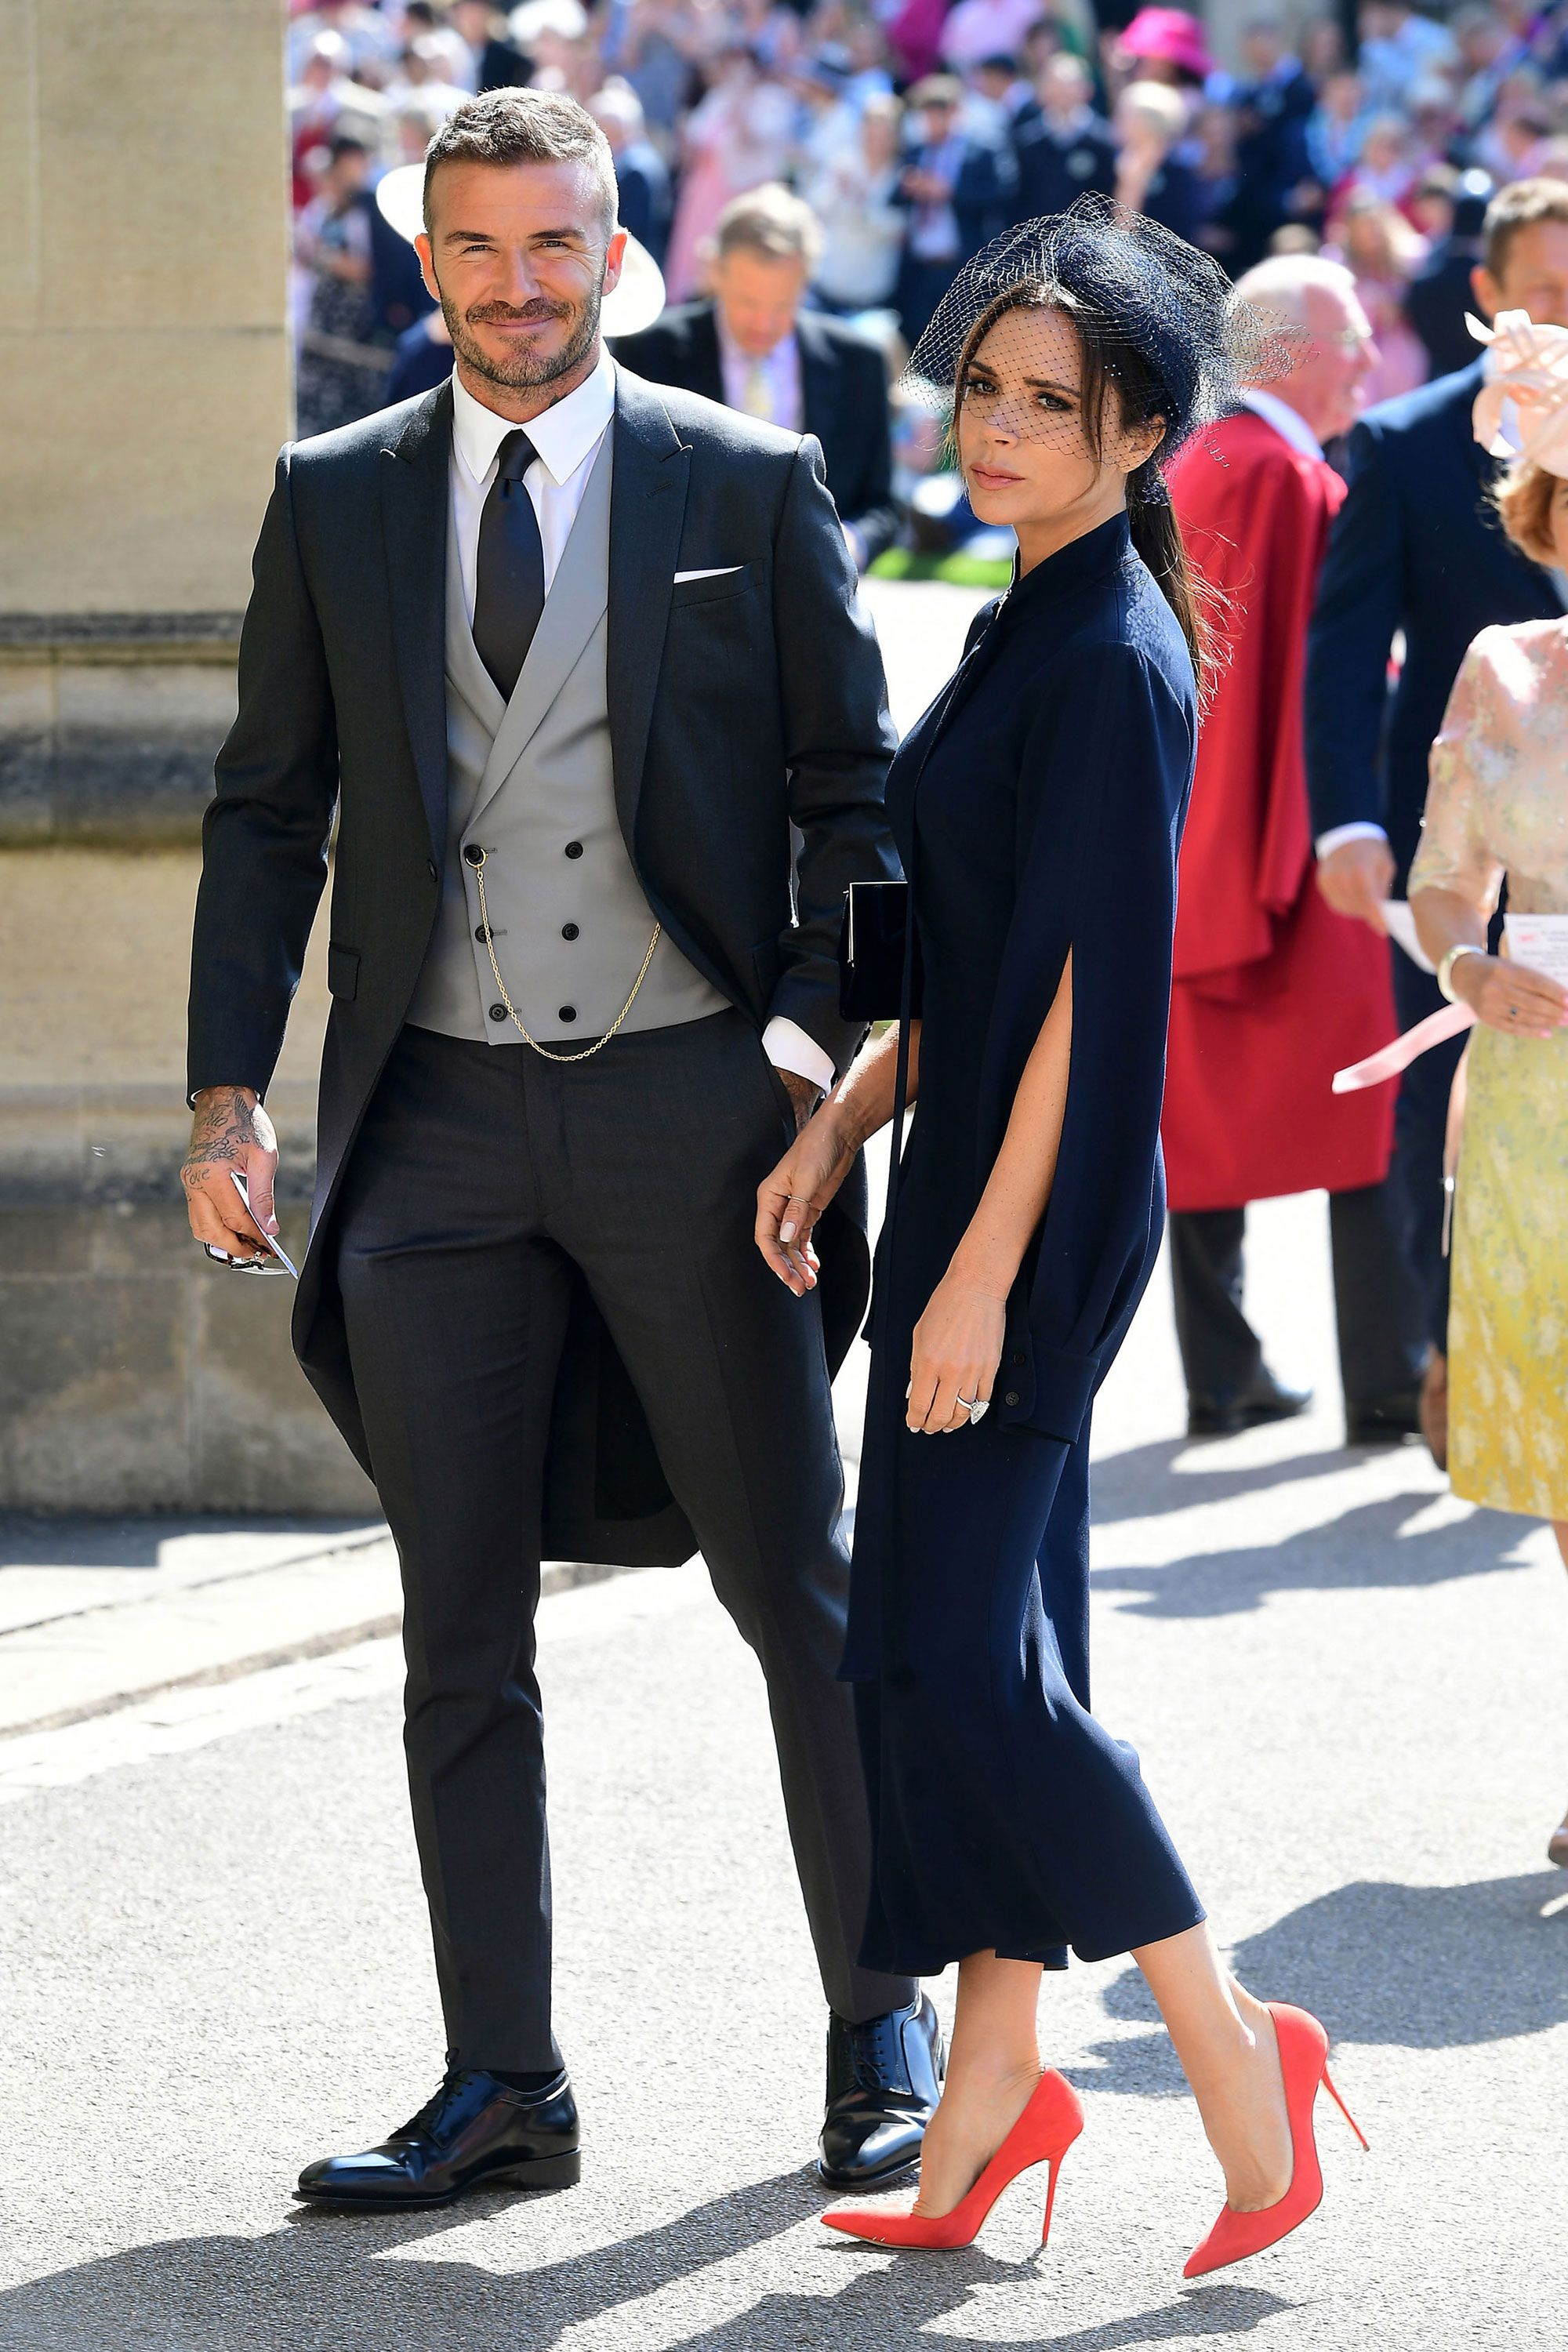 Royal Wedding 2018 Victoria Beckham S Royal Wedding Dress Looks